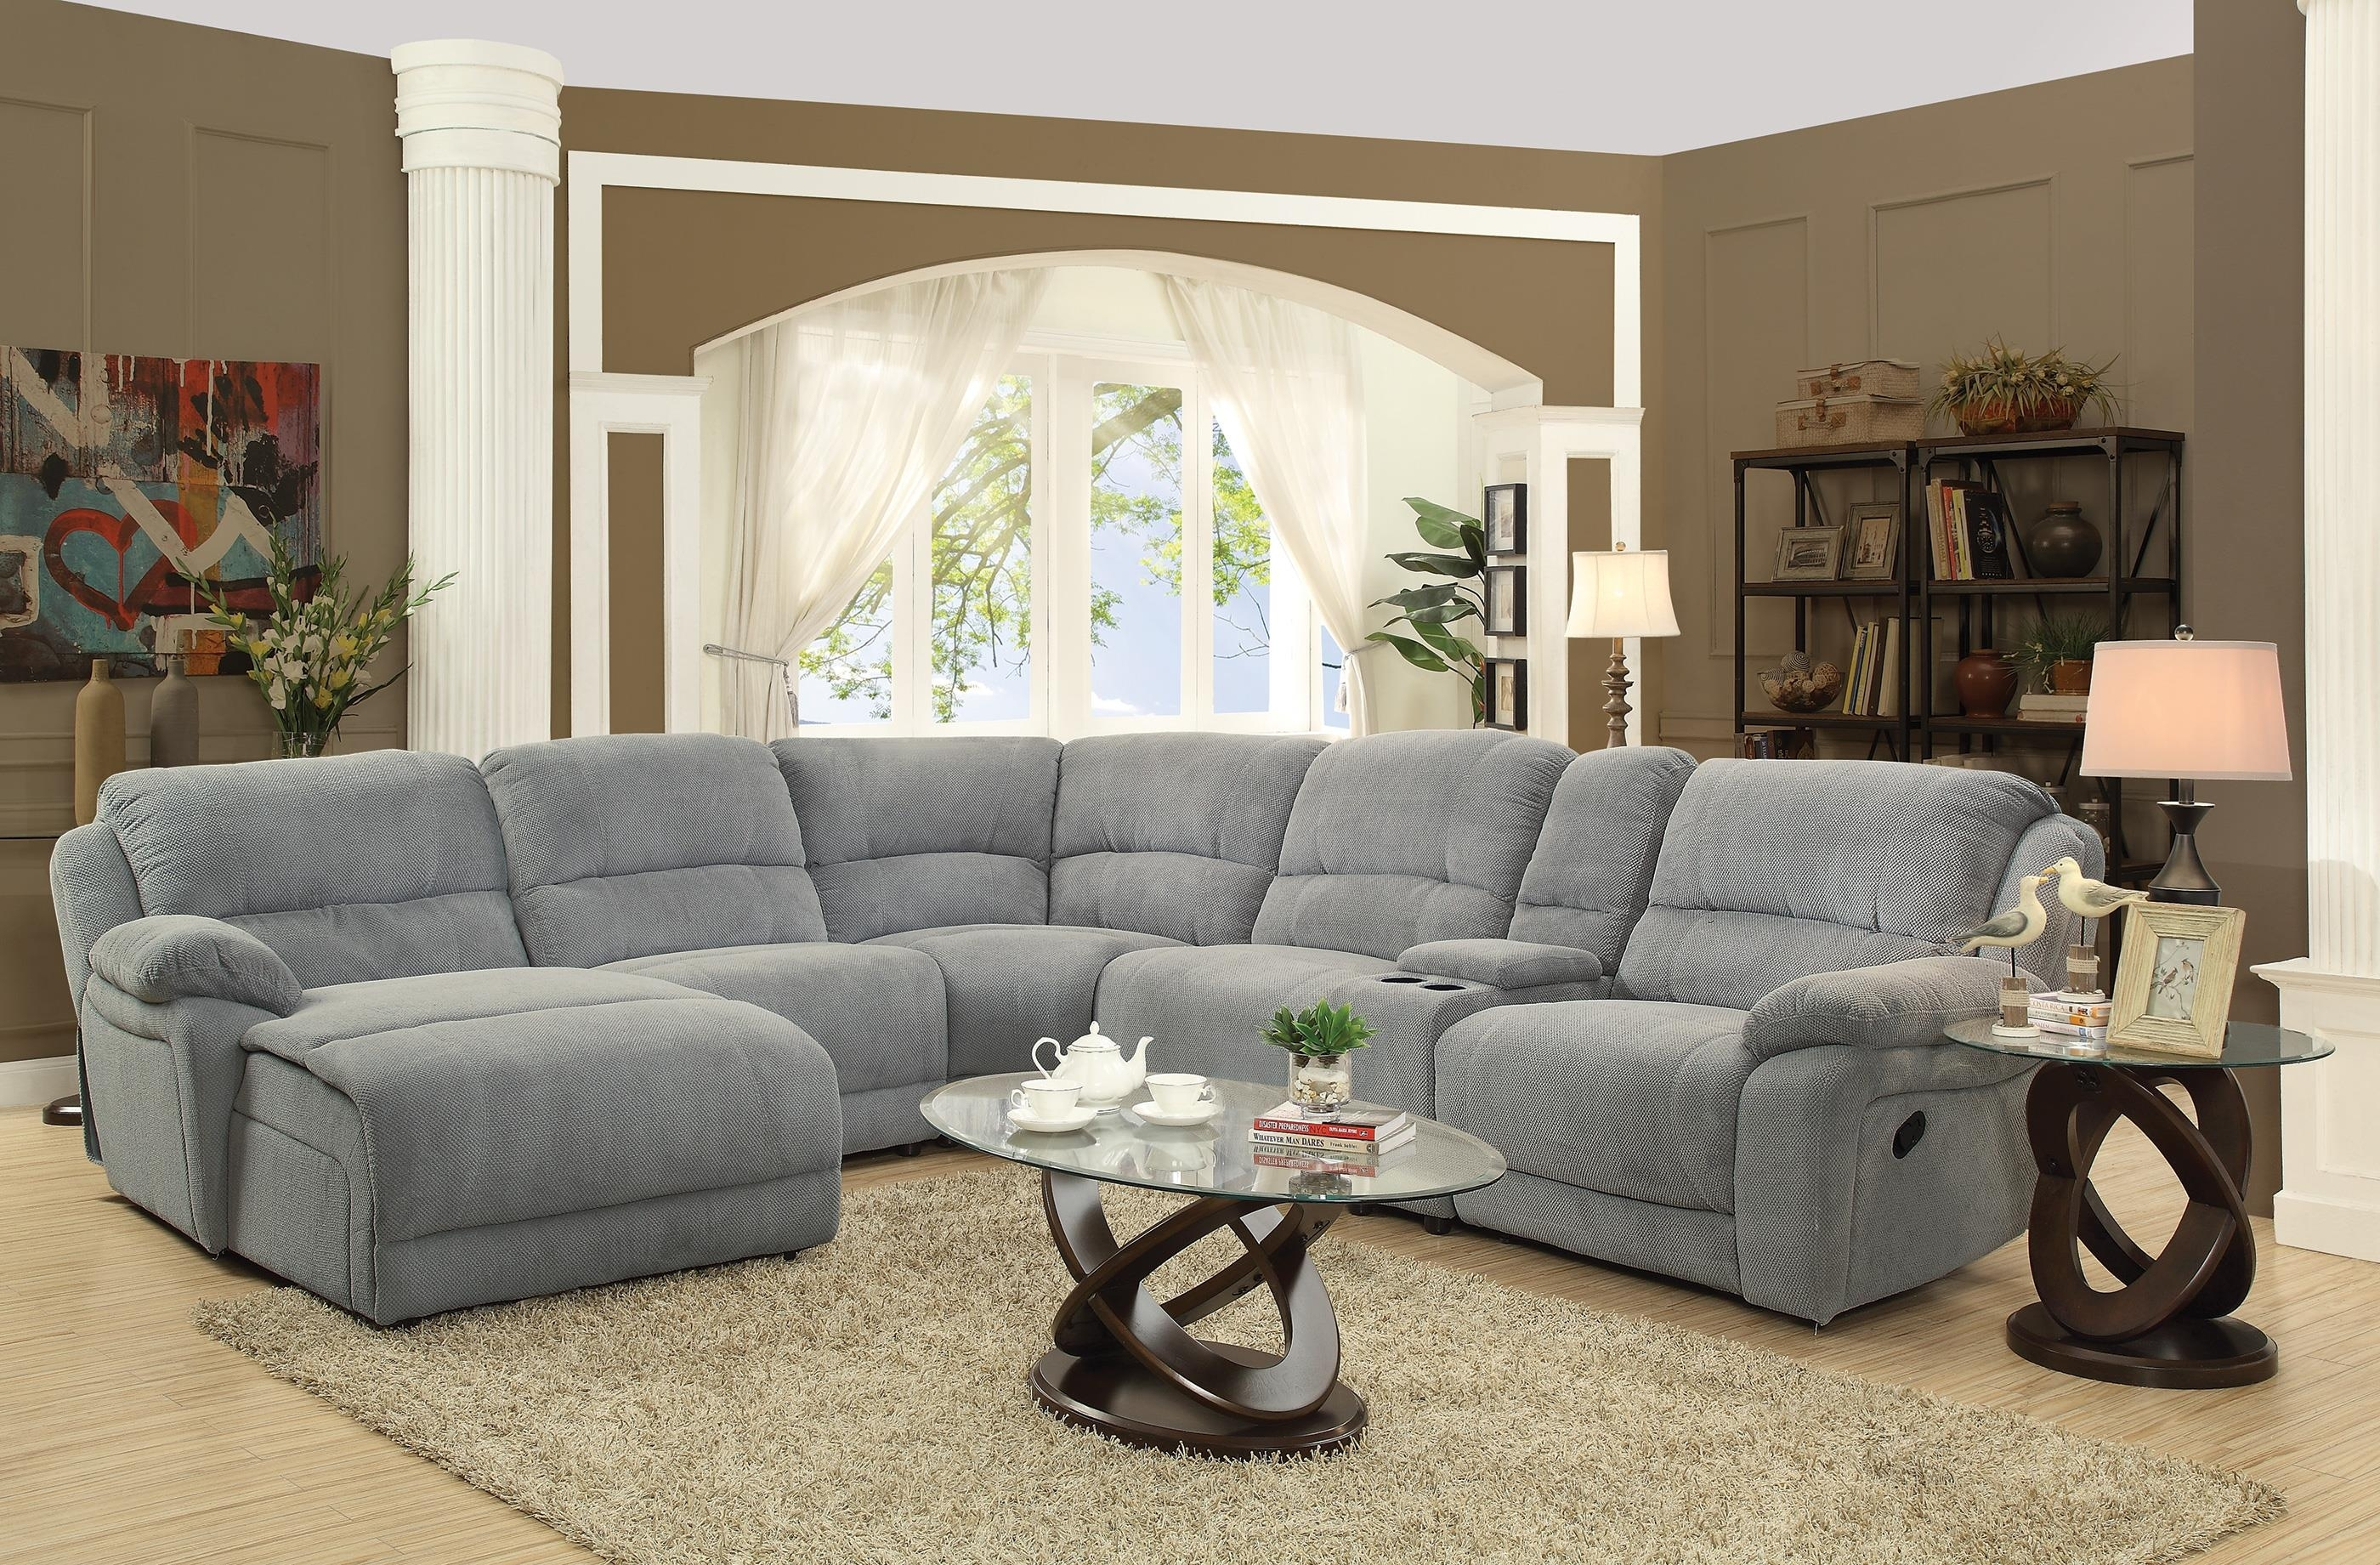 Sofa Couches Tanectional Microfiber Black Fabric Jedd Reclining Intended For Jedd Fabric Reclining Sectional Sofas (Image 10 of 10)